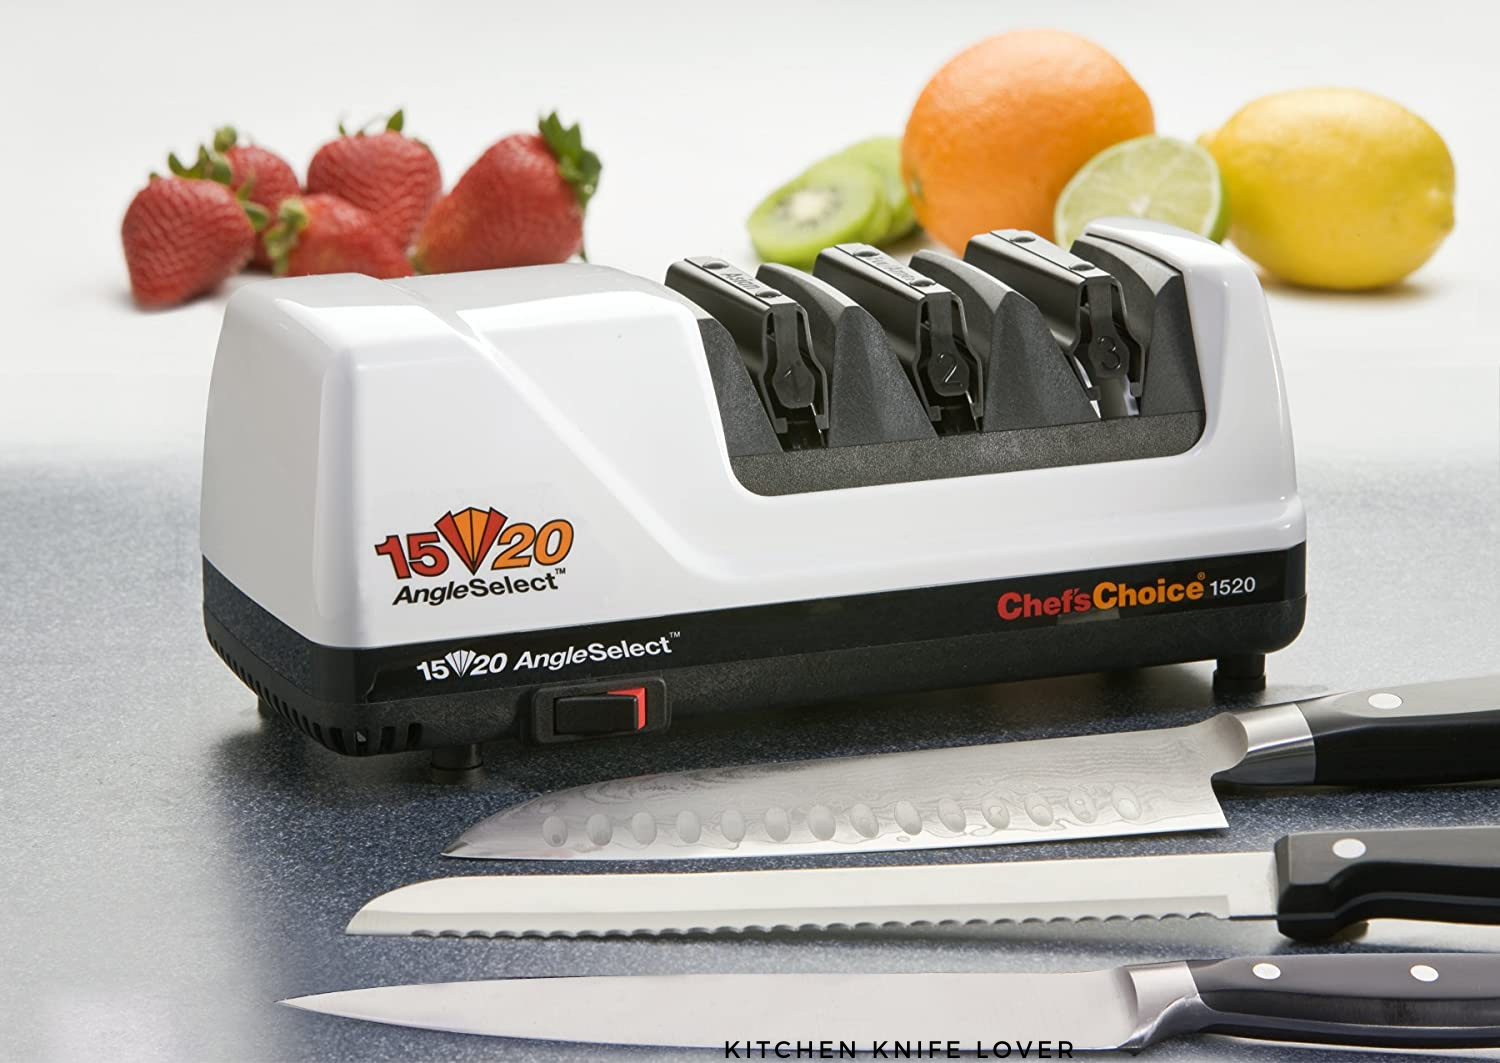 Chef's Choice 1520 Review: Best Electric Knife Sharpener